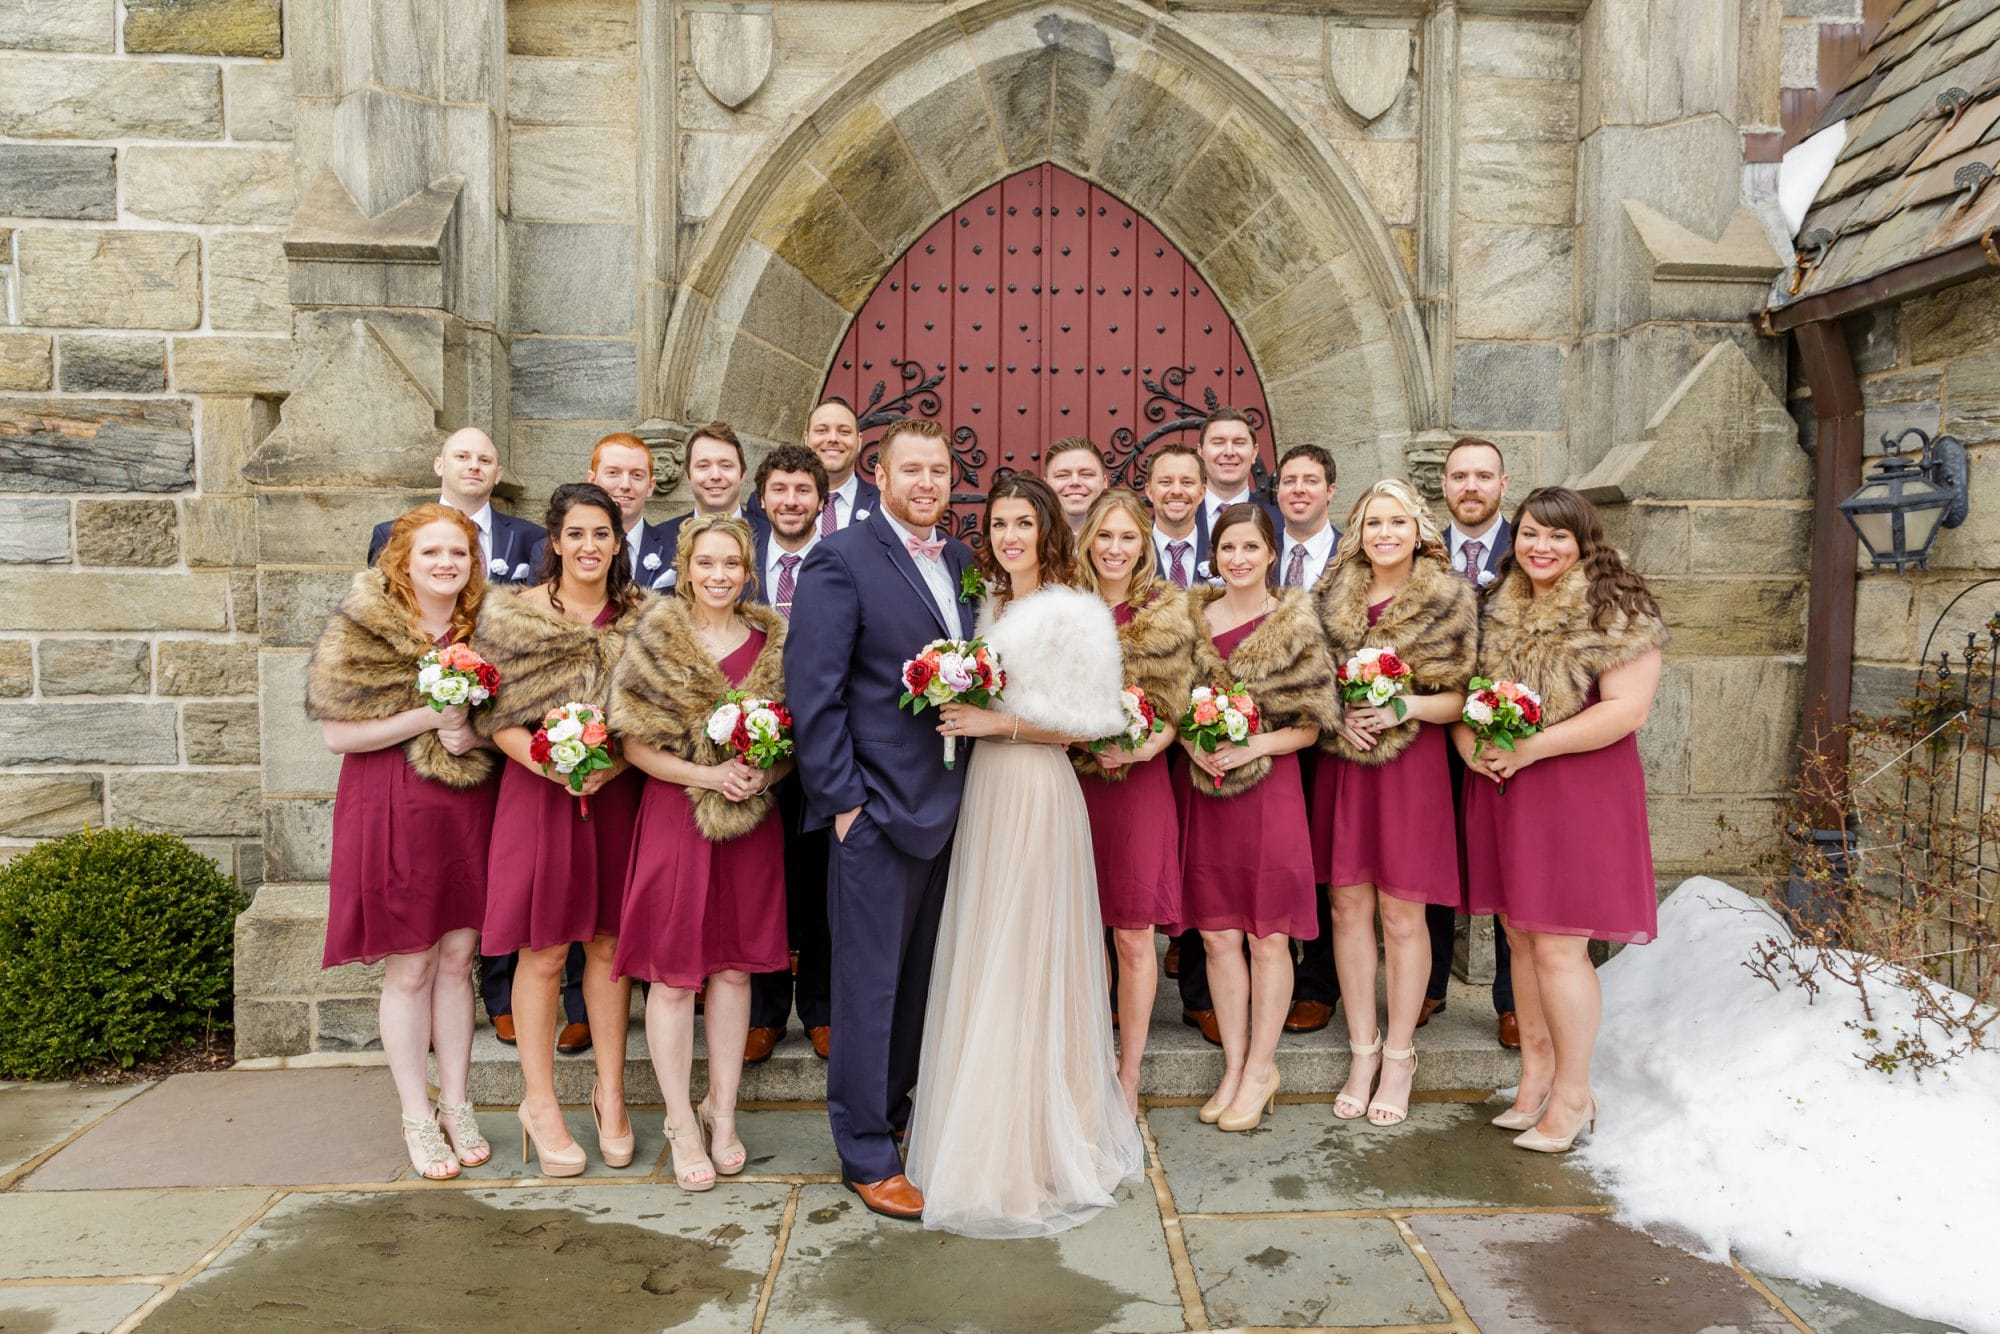 Steven Miller Photography - wedding party in front of old church door